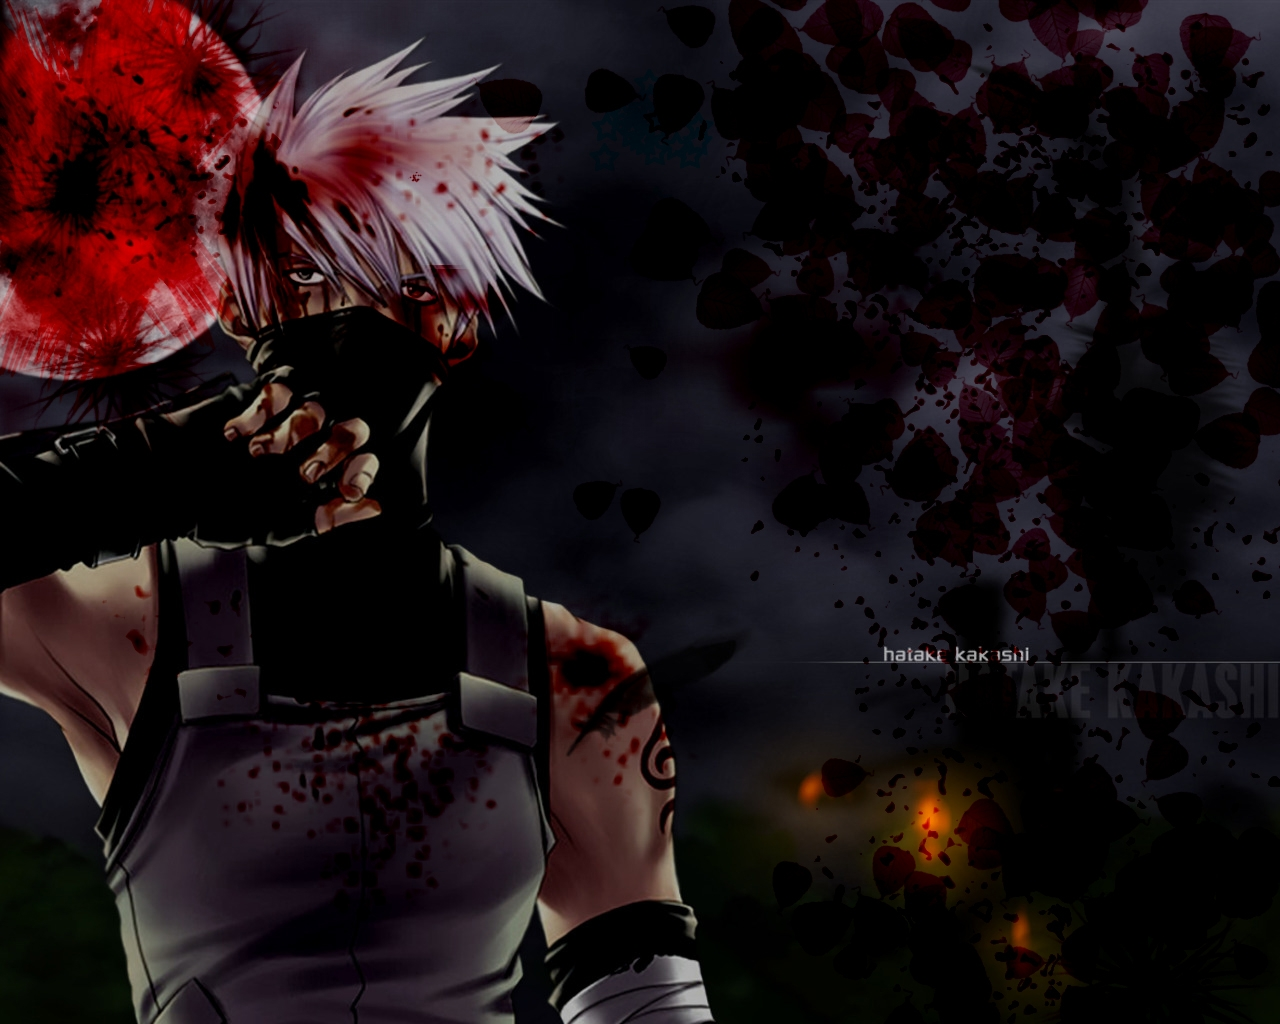 high definition wallpapercomphotokakashi desktop wallpaper23html 1280x1024